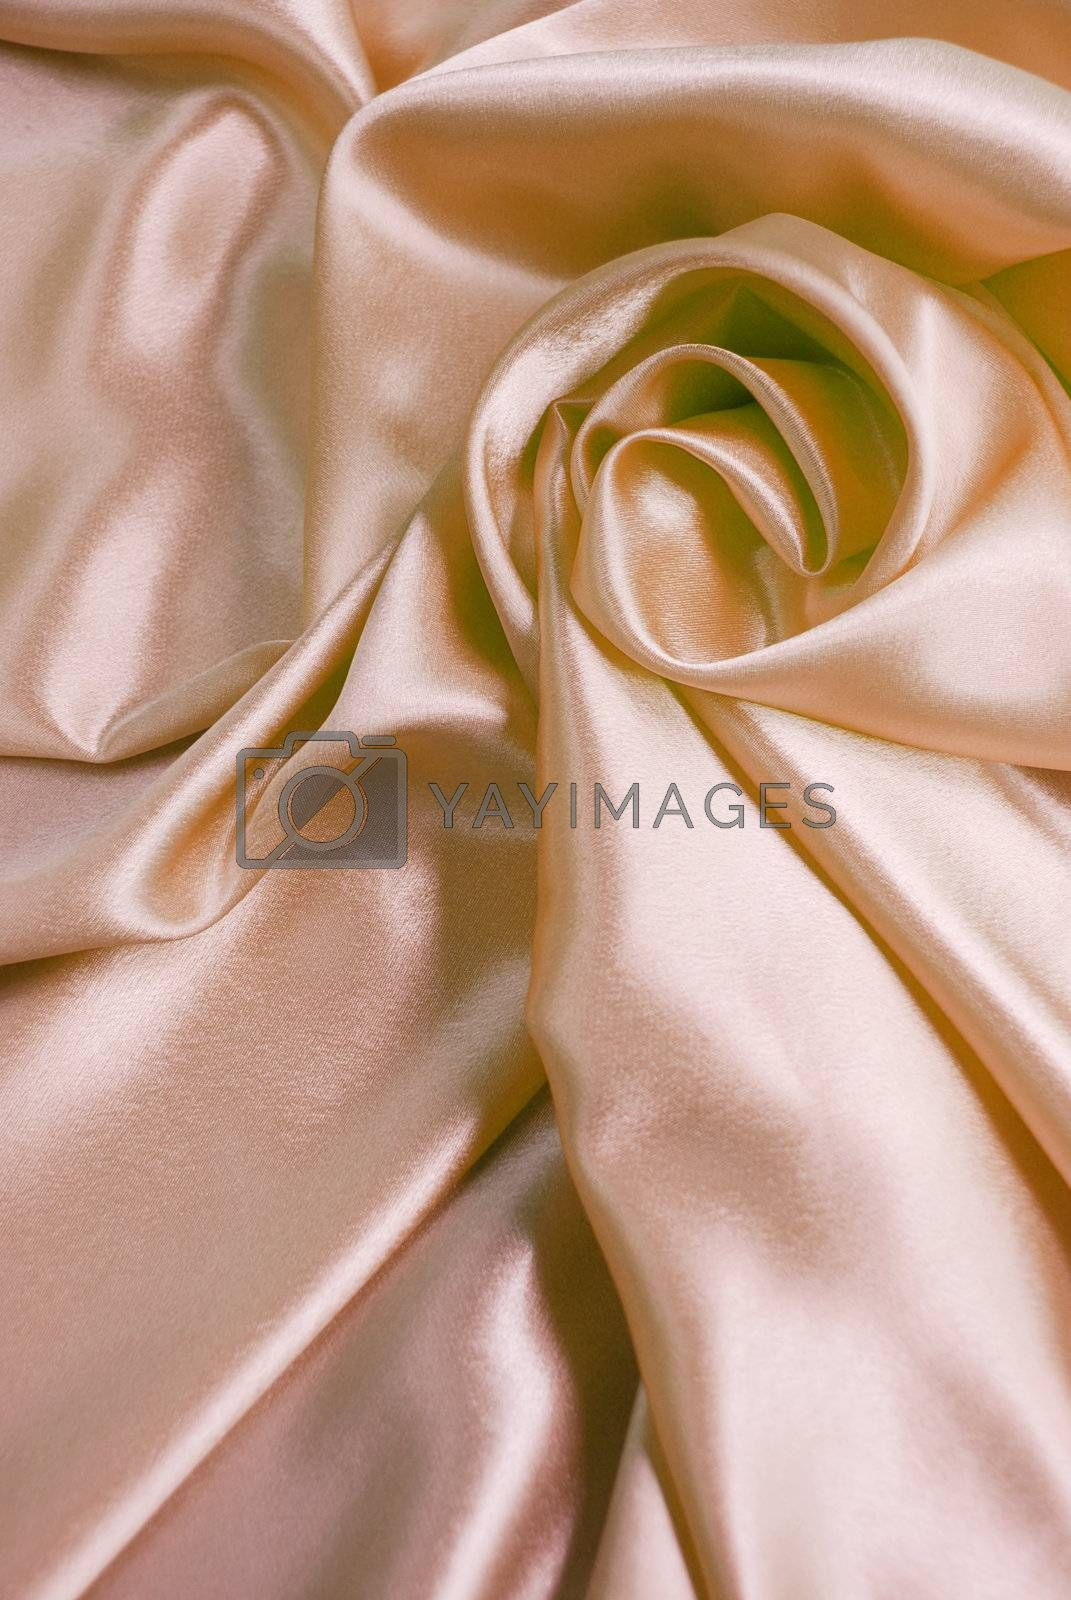 Beige satin with a folds